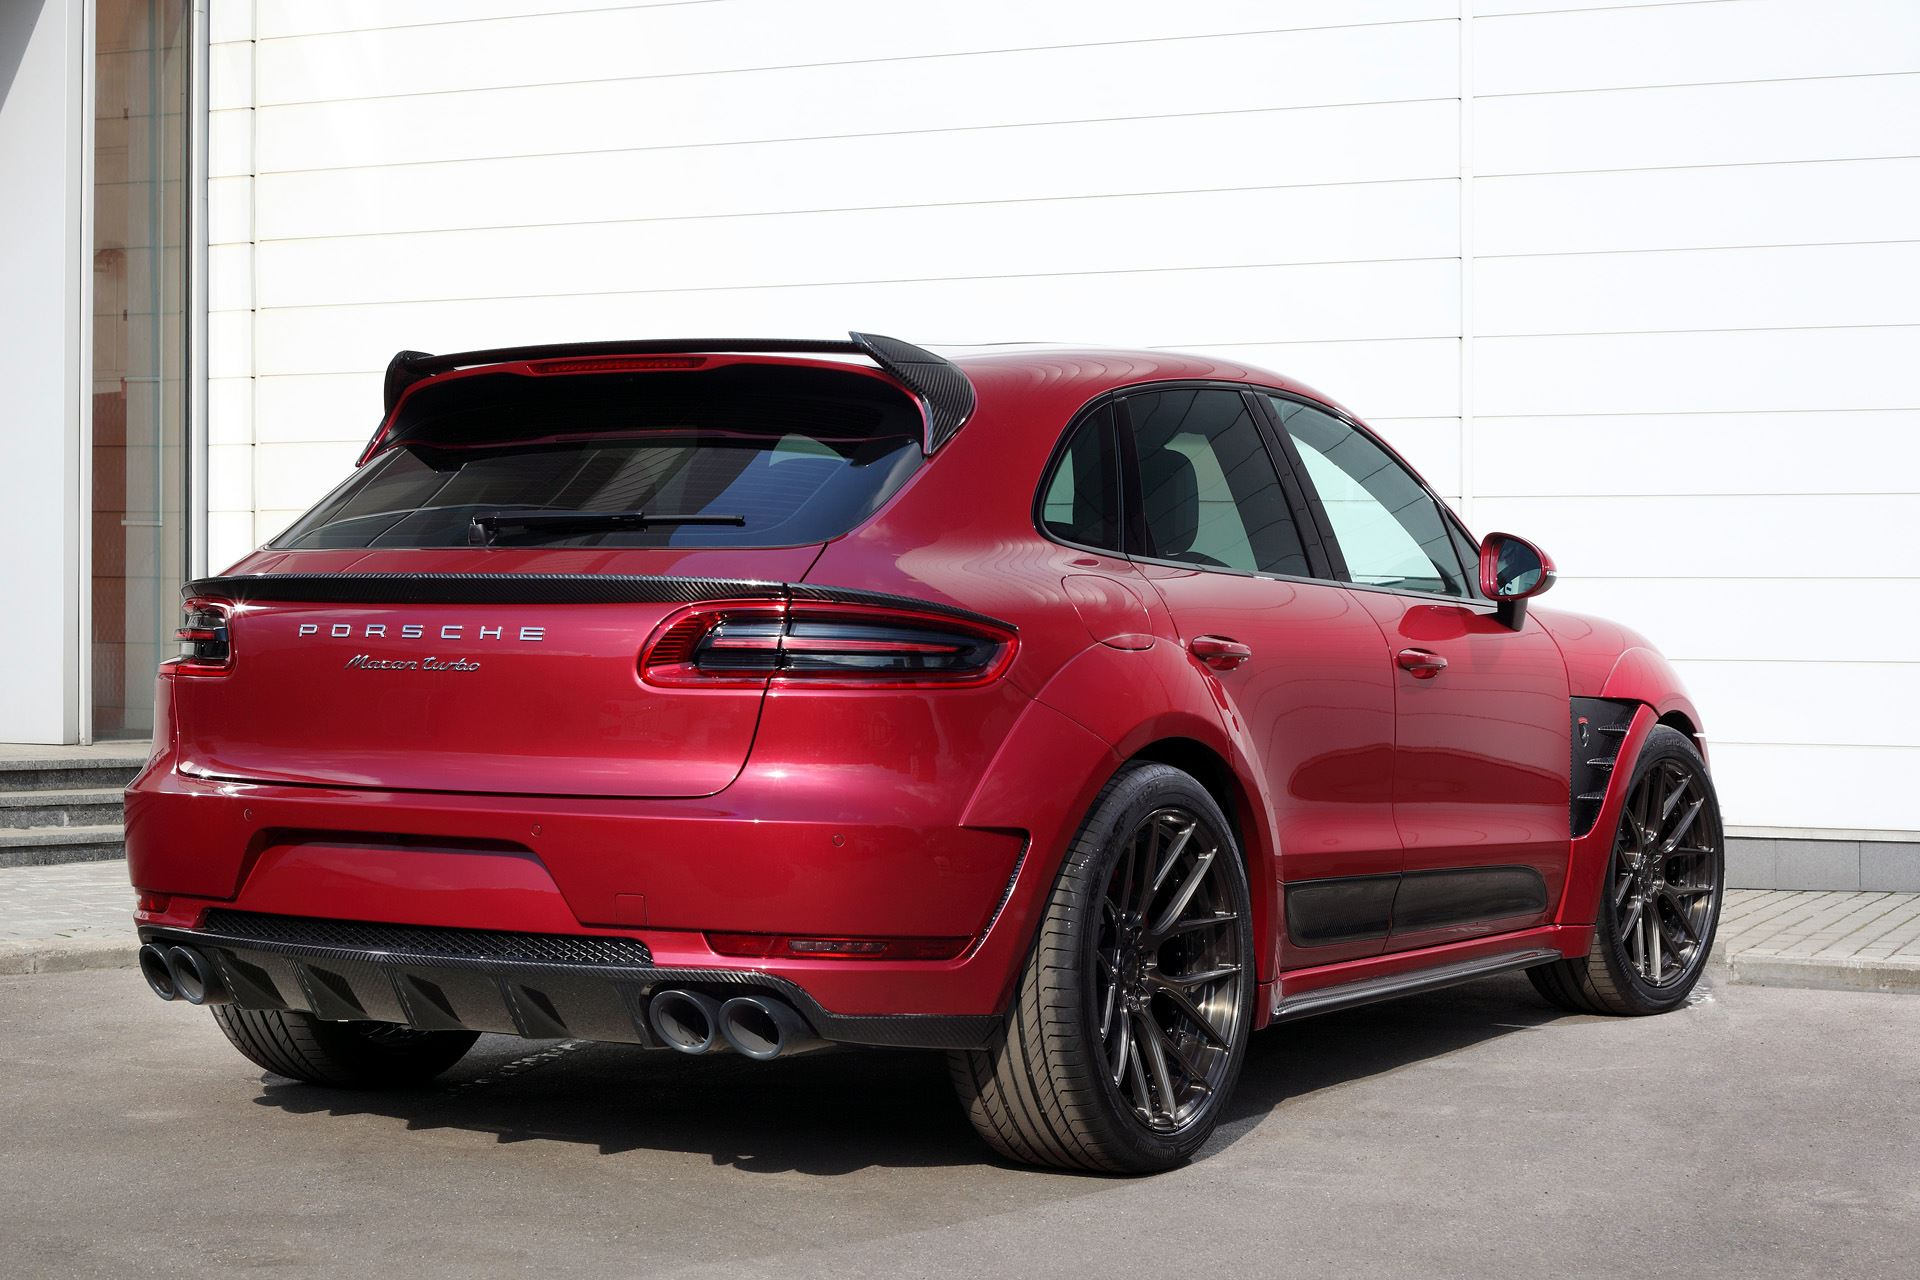 Porsche Mancan URSA By TopCar Gets Cherry Red Paint And